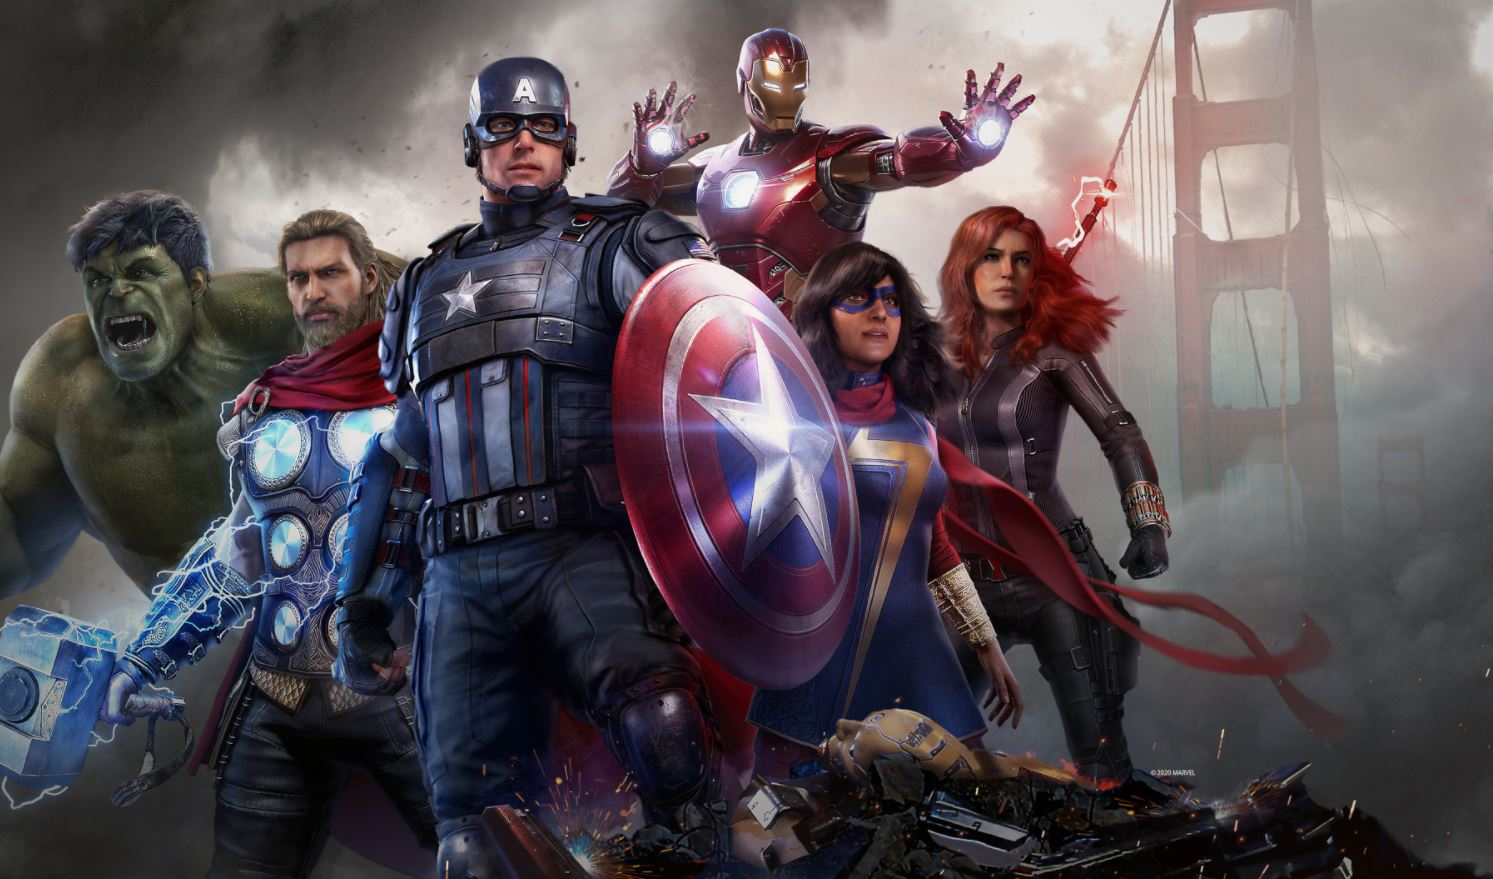 marvels-avengers-ps5-release-date-confirmed-for-march-18